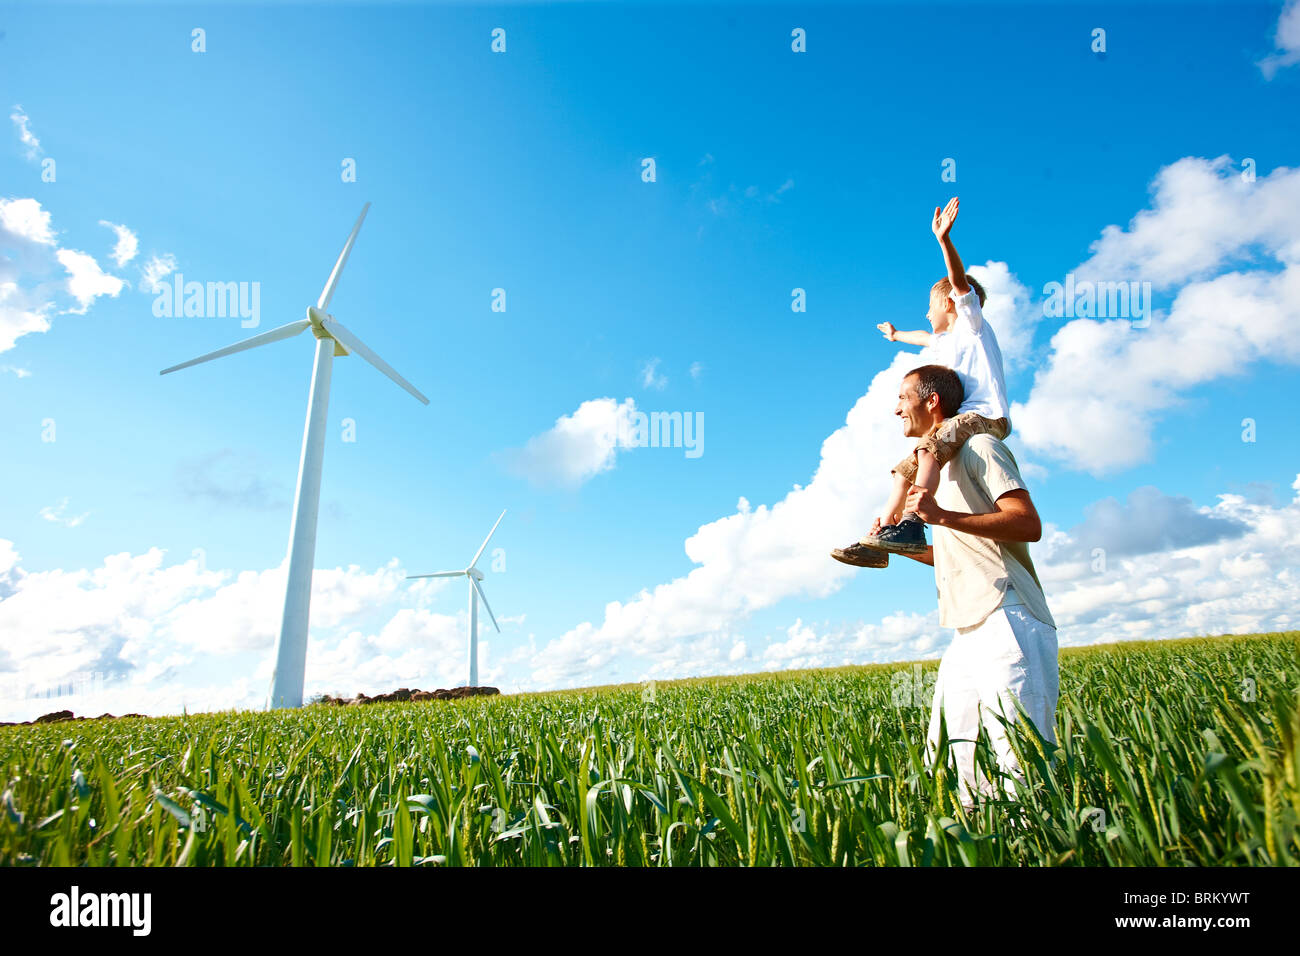 Farther and son looking at wind turbine - Stock Image